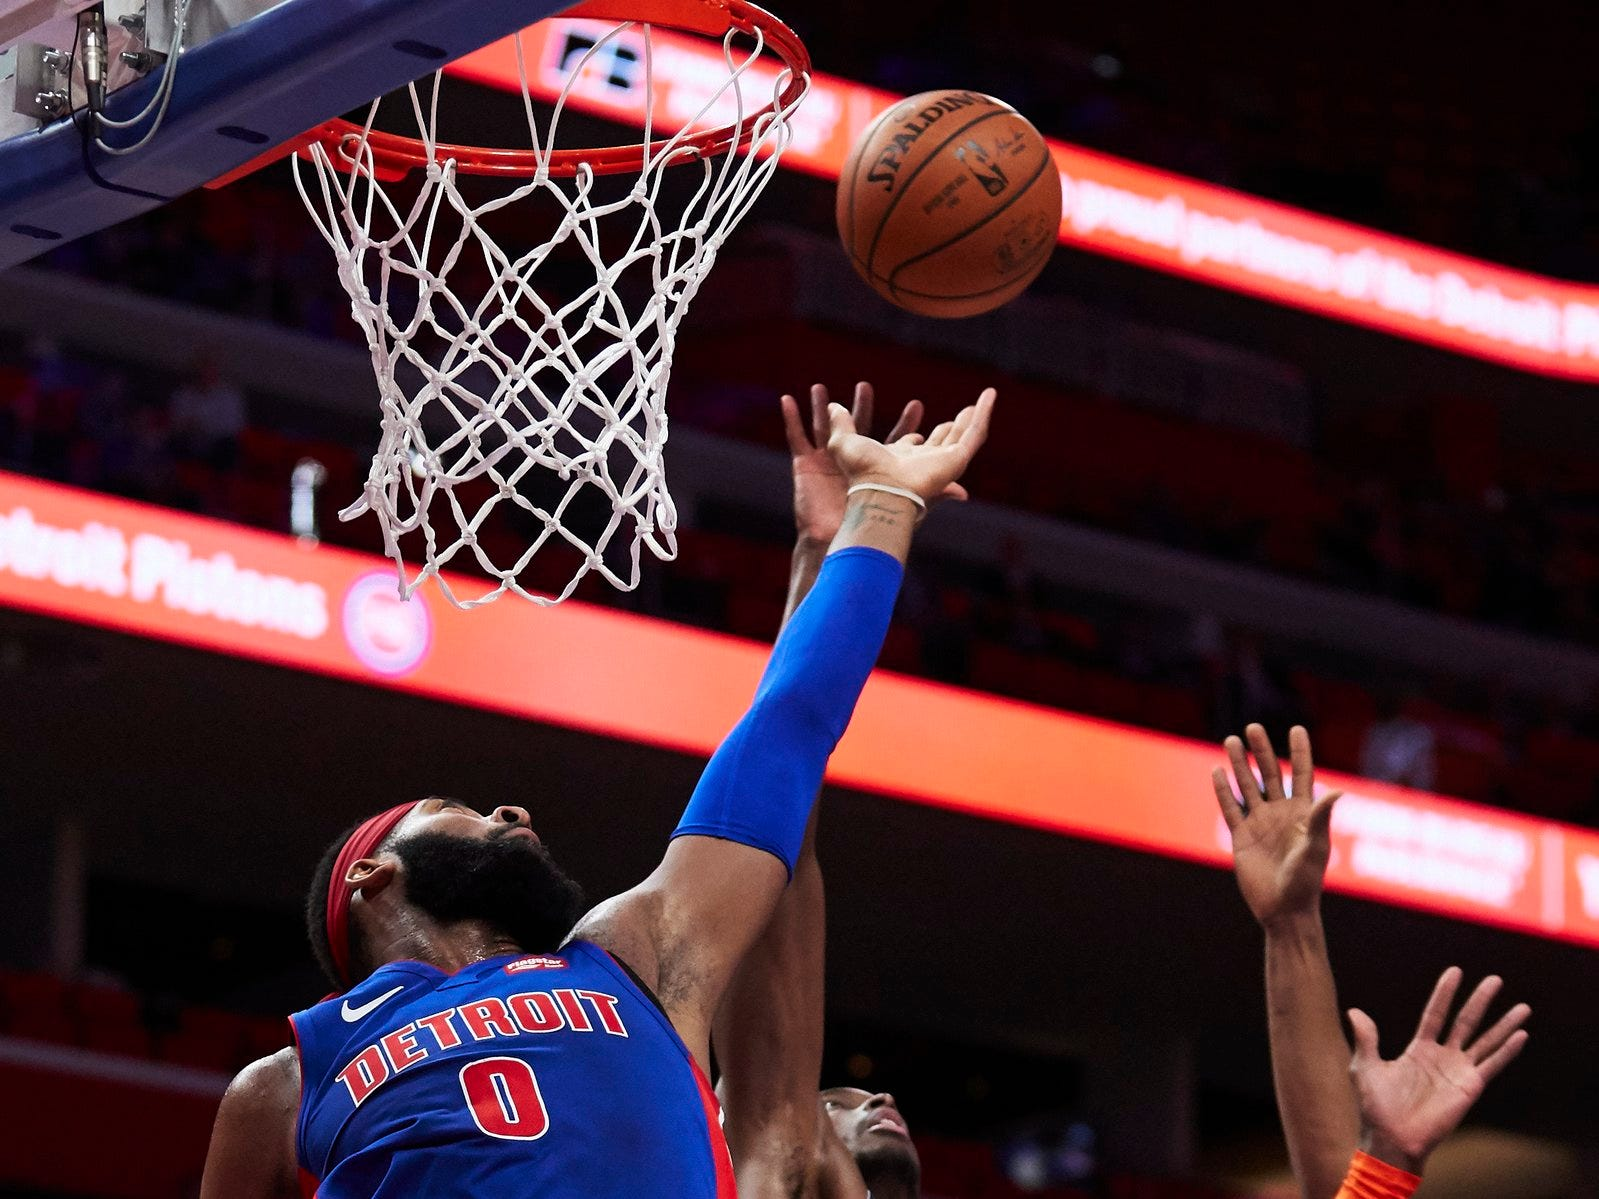 Detroit Pistons center Andre Drummond (0) and Oklahoma City Thunder forward Jerami Grant (9) goes for the rebound in the second half at Little Caesars Arena.